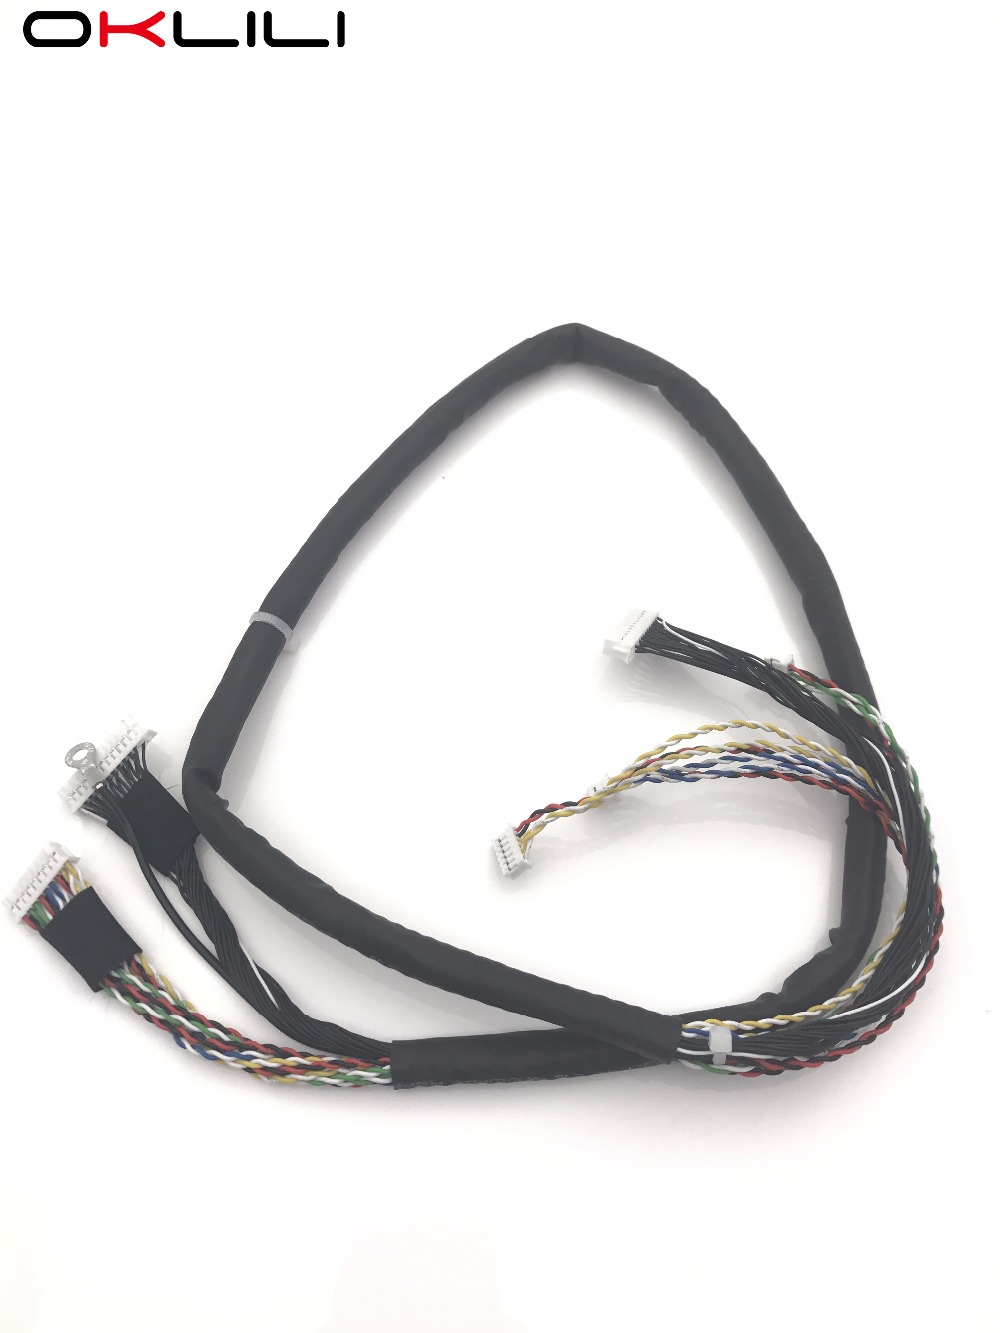 Q7404-50007 ADF Cable Assy Harness For HP LaserJetEnterprise 500 MFP M525 M525dn M525f M525c M575 M575dn M575f M575c